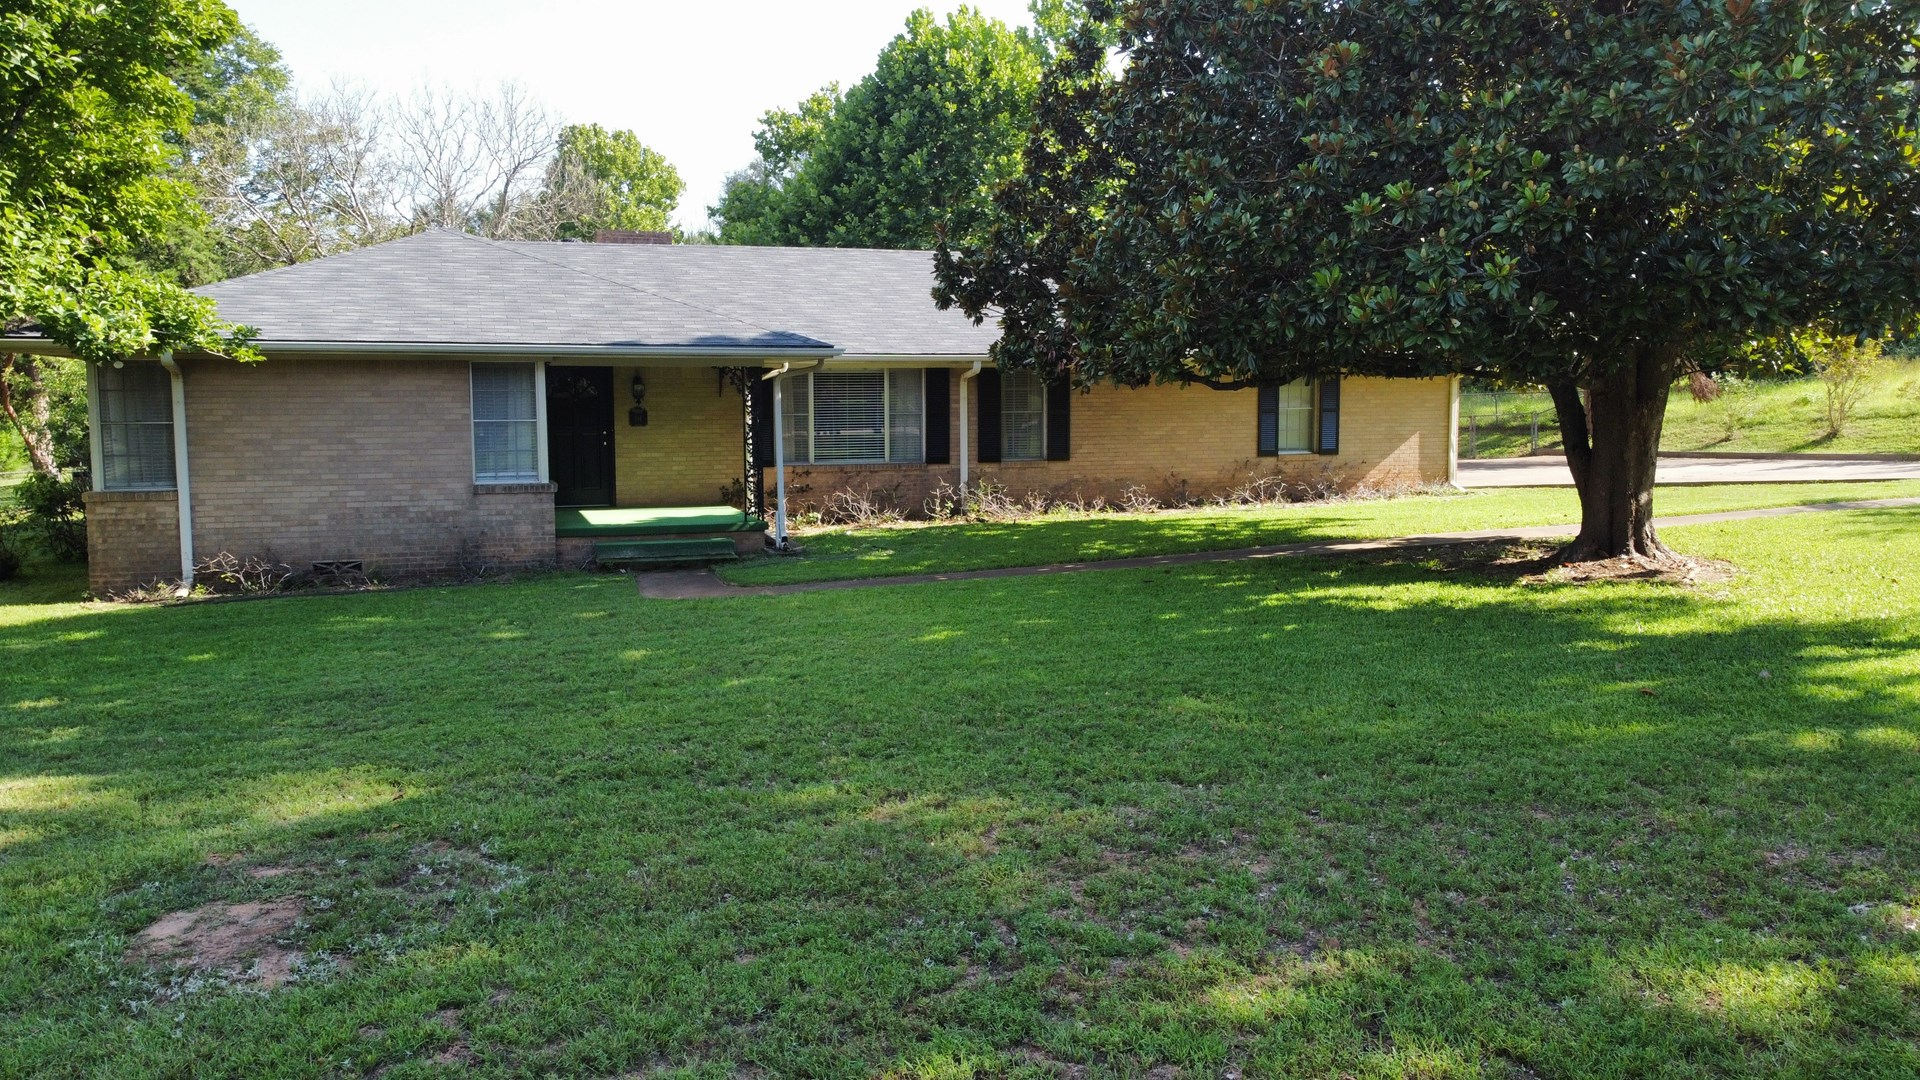 3/2 HOME FOR SALE ON 1 ACRE LOT IN PALESTINE TEXAS